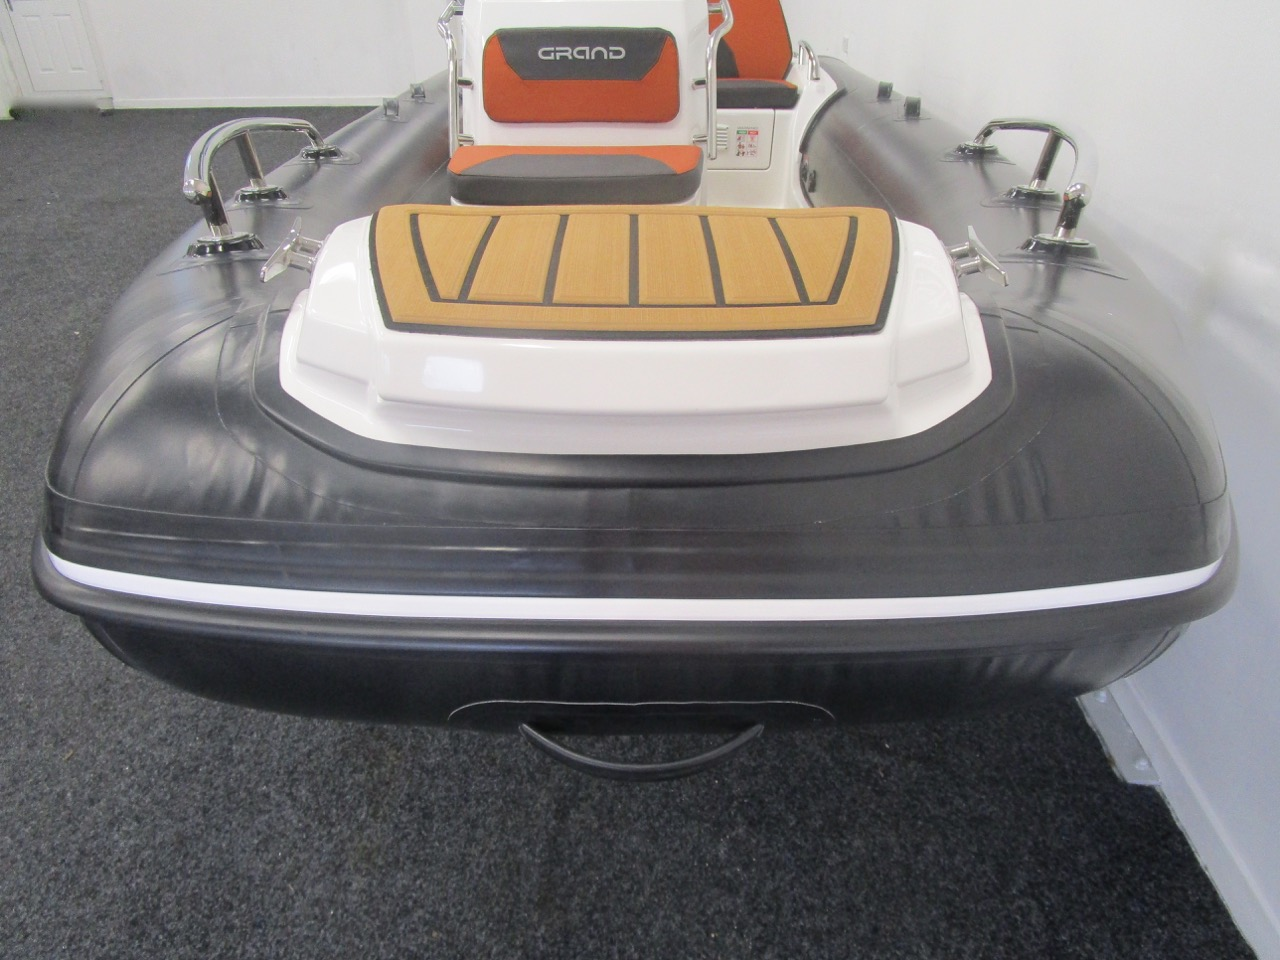 GRAND Golden Line G420 RIB Bow view